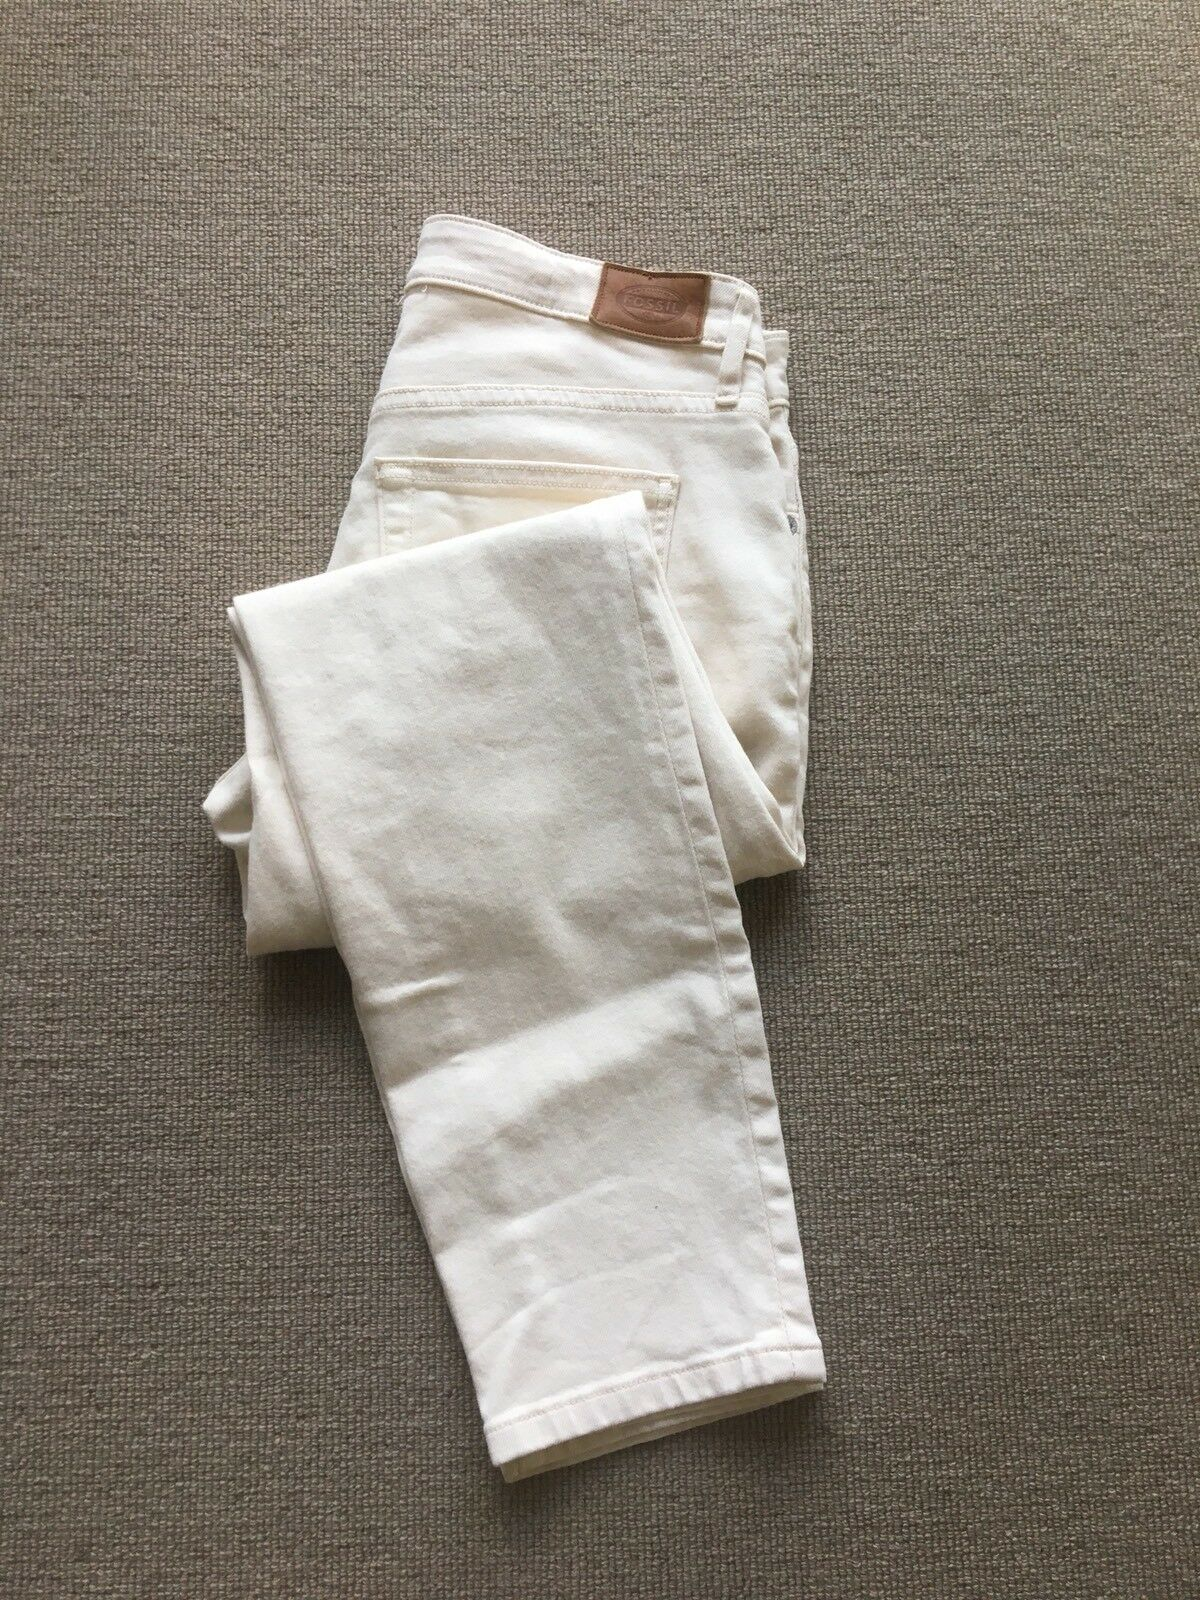 Cream Jeans Waist 27. Skinny. Fossil RRP